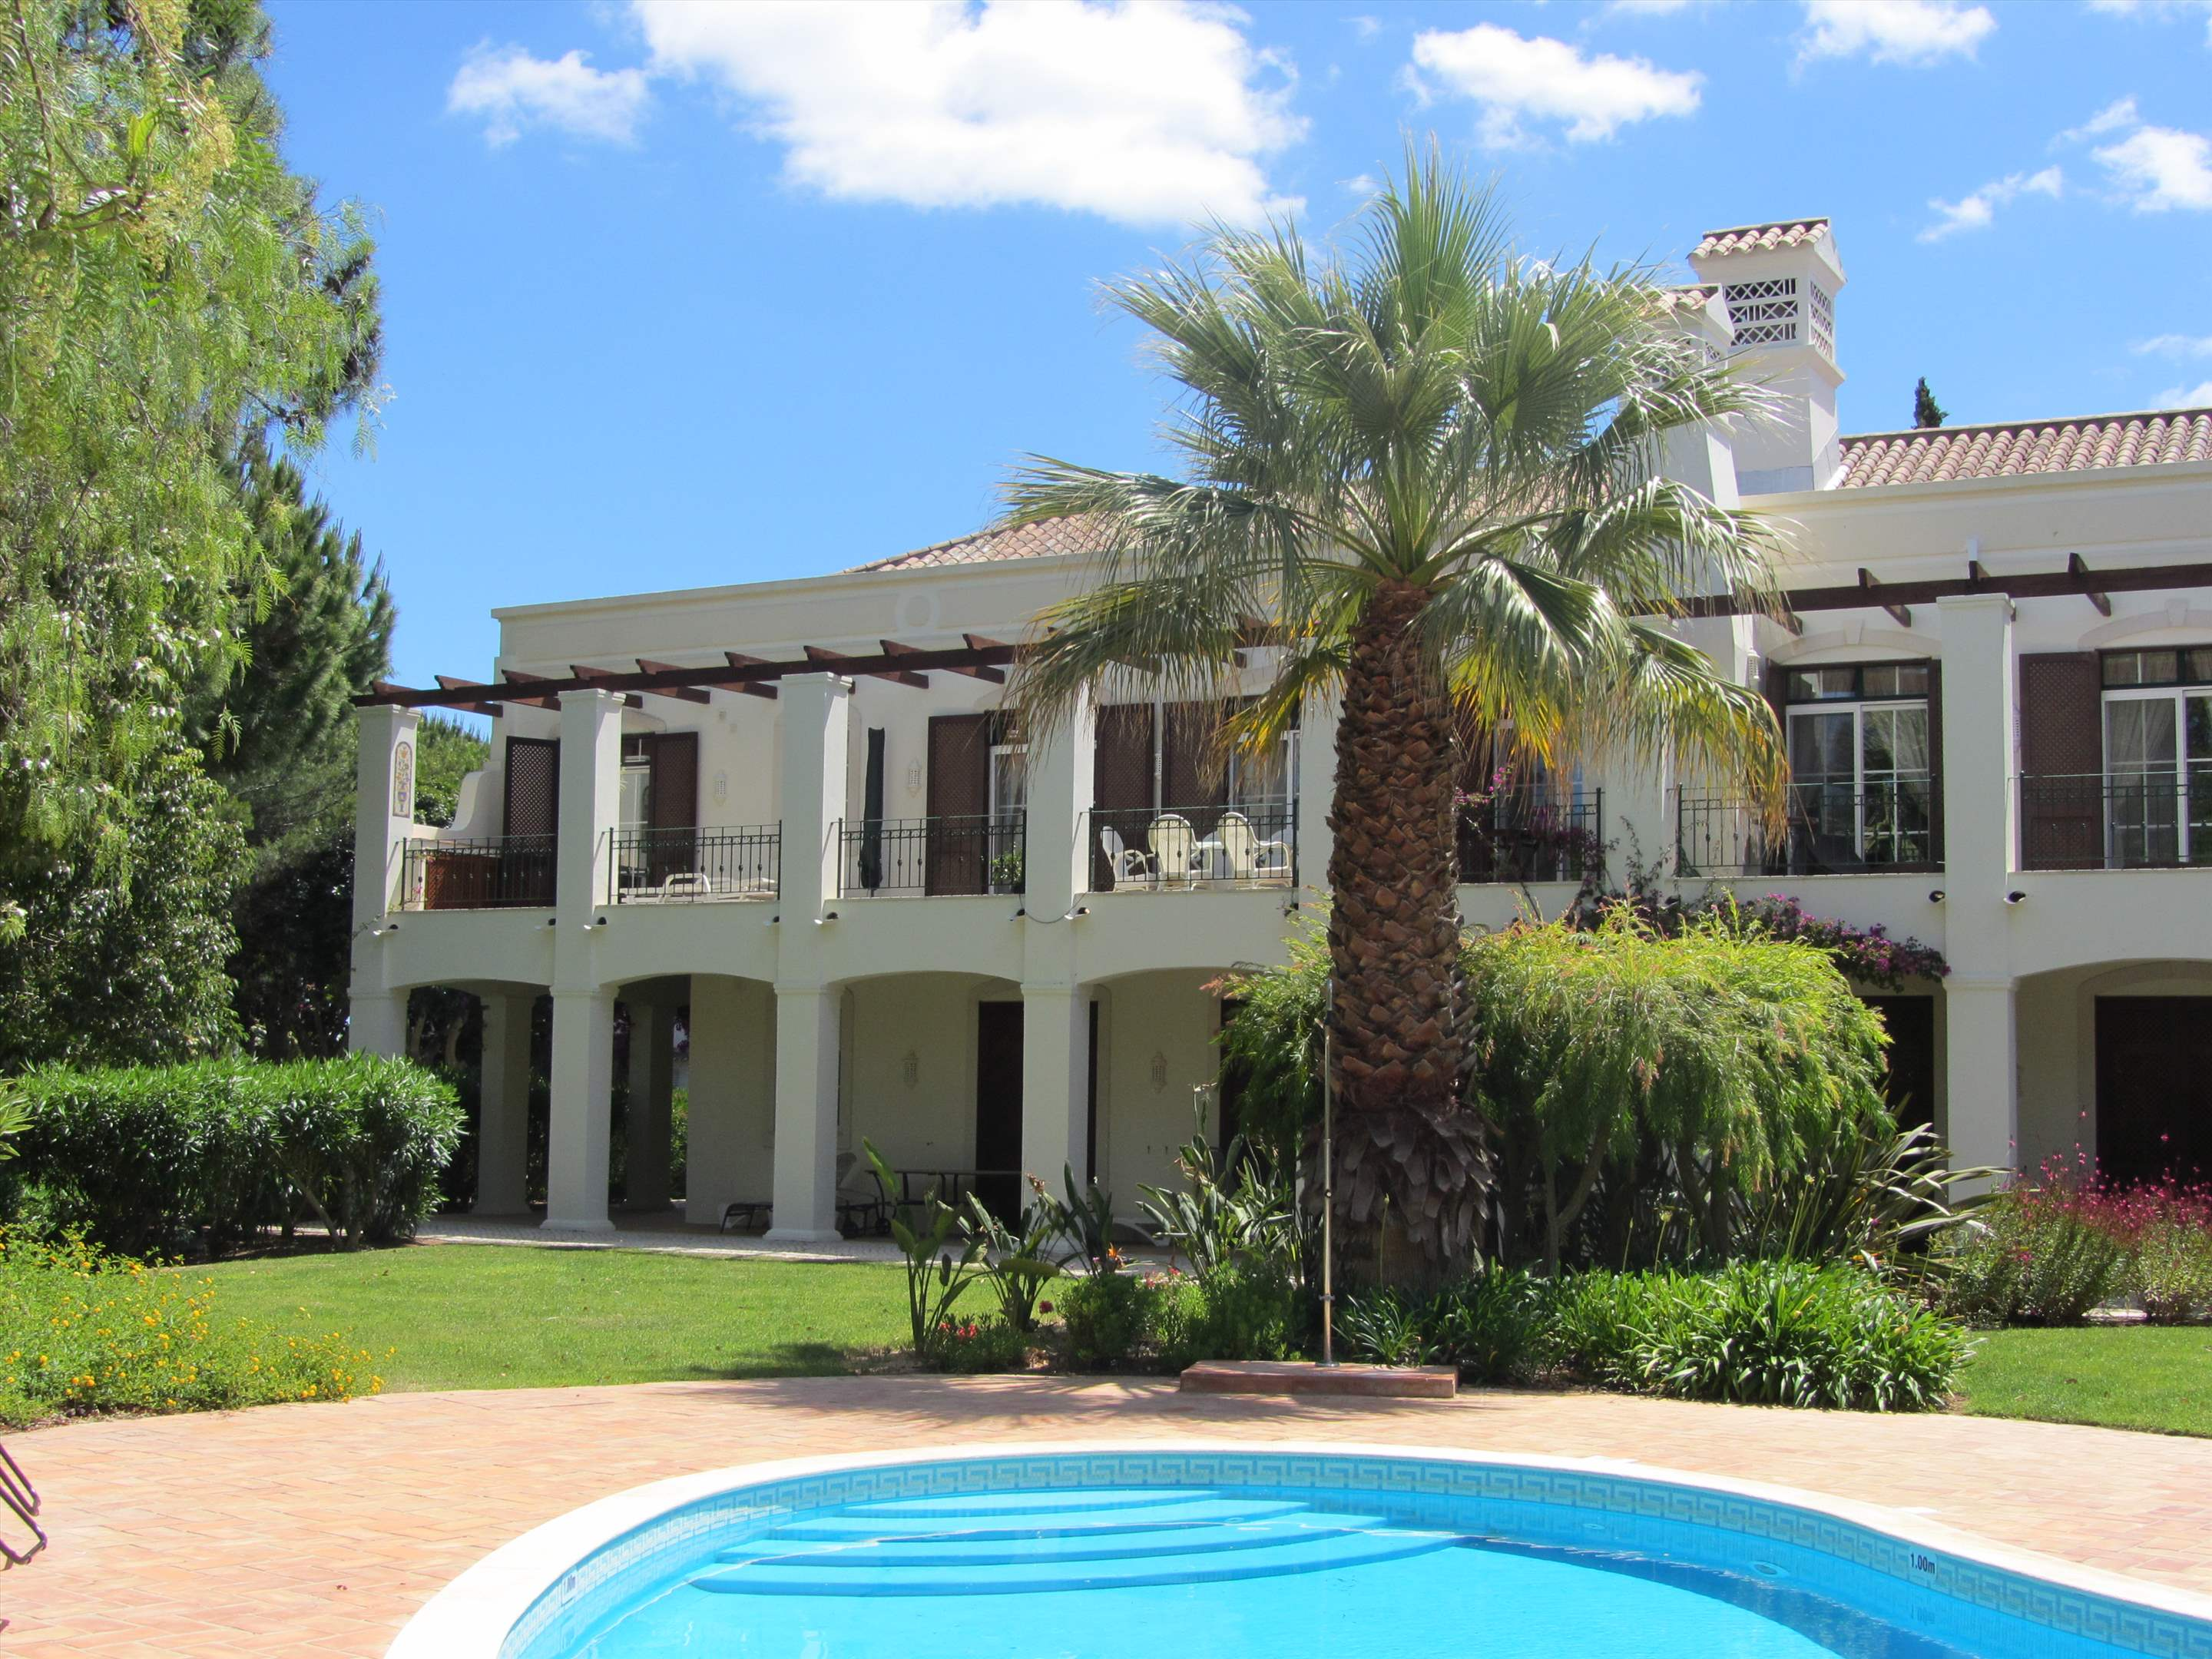 Apartment Dolores, 2 bedroom apartment in Quinta do Lago, Algarve